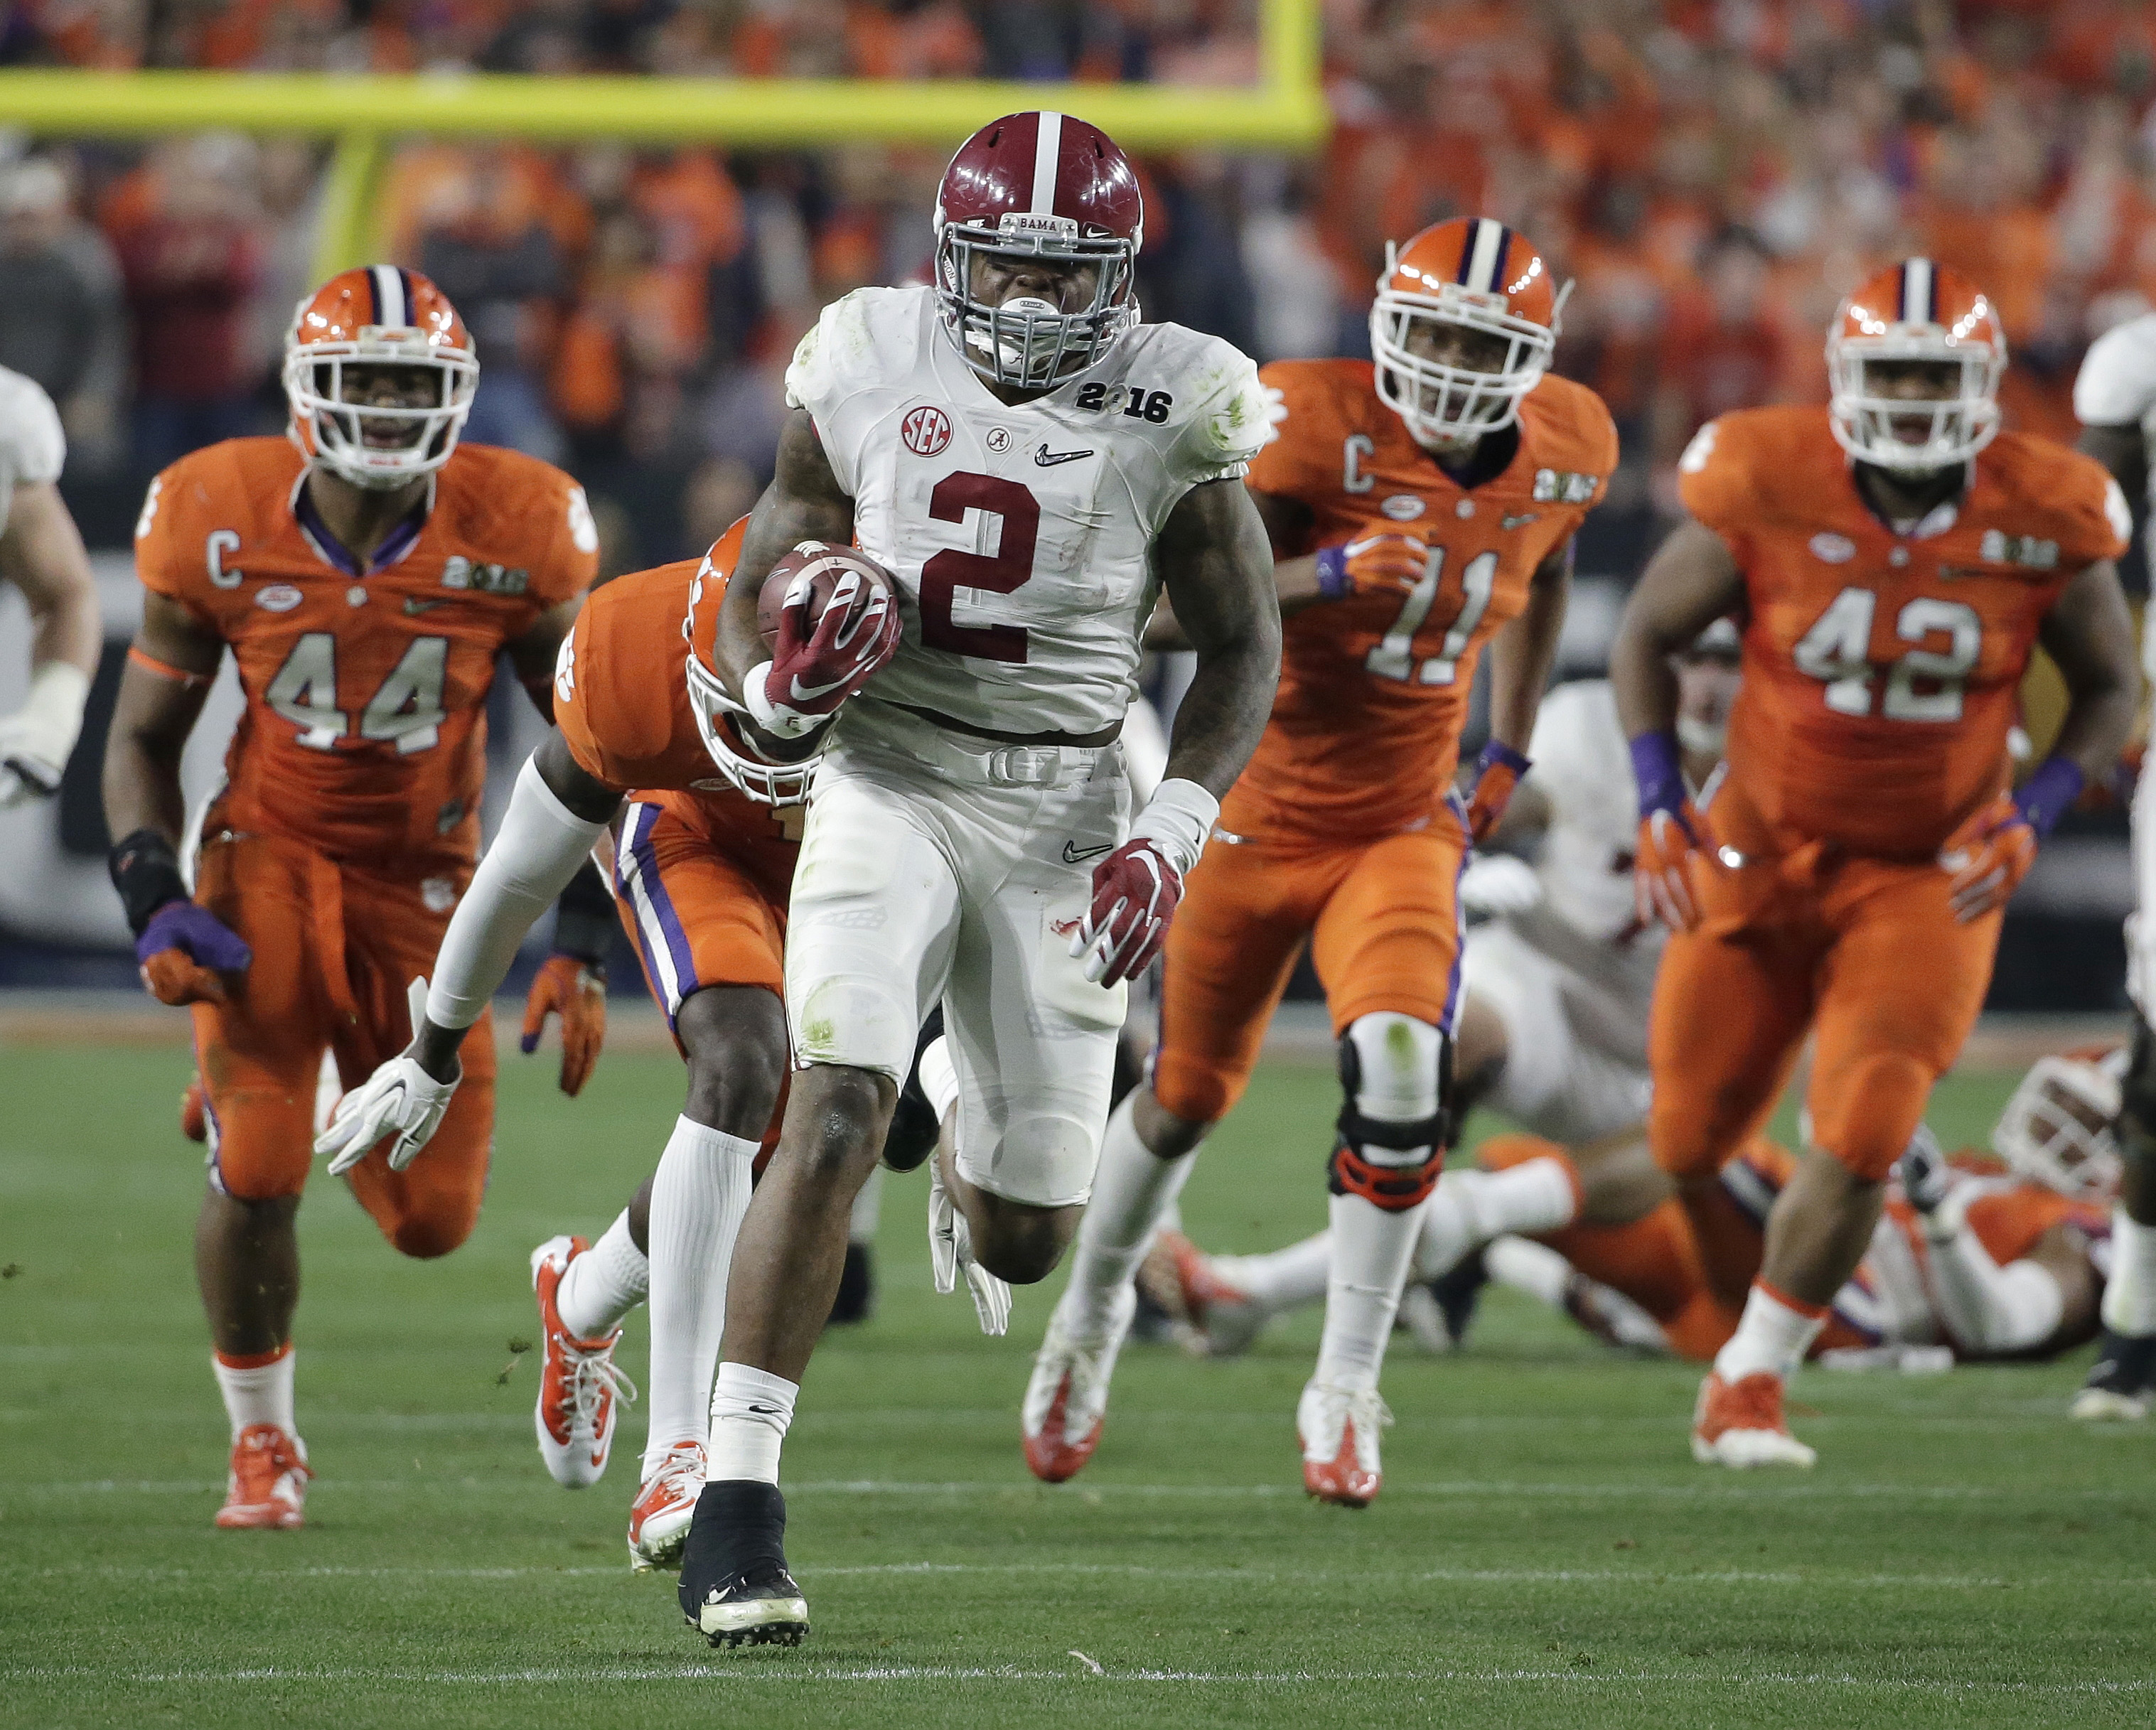 Alabama's Derrick Henry runs for a touchdown in the NCAA college football championship game in Glendale, Ariz. on Jan. 11, 2016, in which Alabama defeated Clemson to become the most recent national champion. (AP Photo/Chris Carlson)